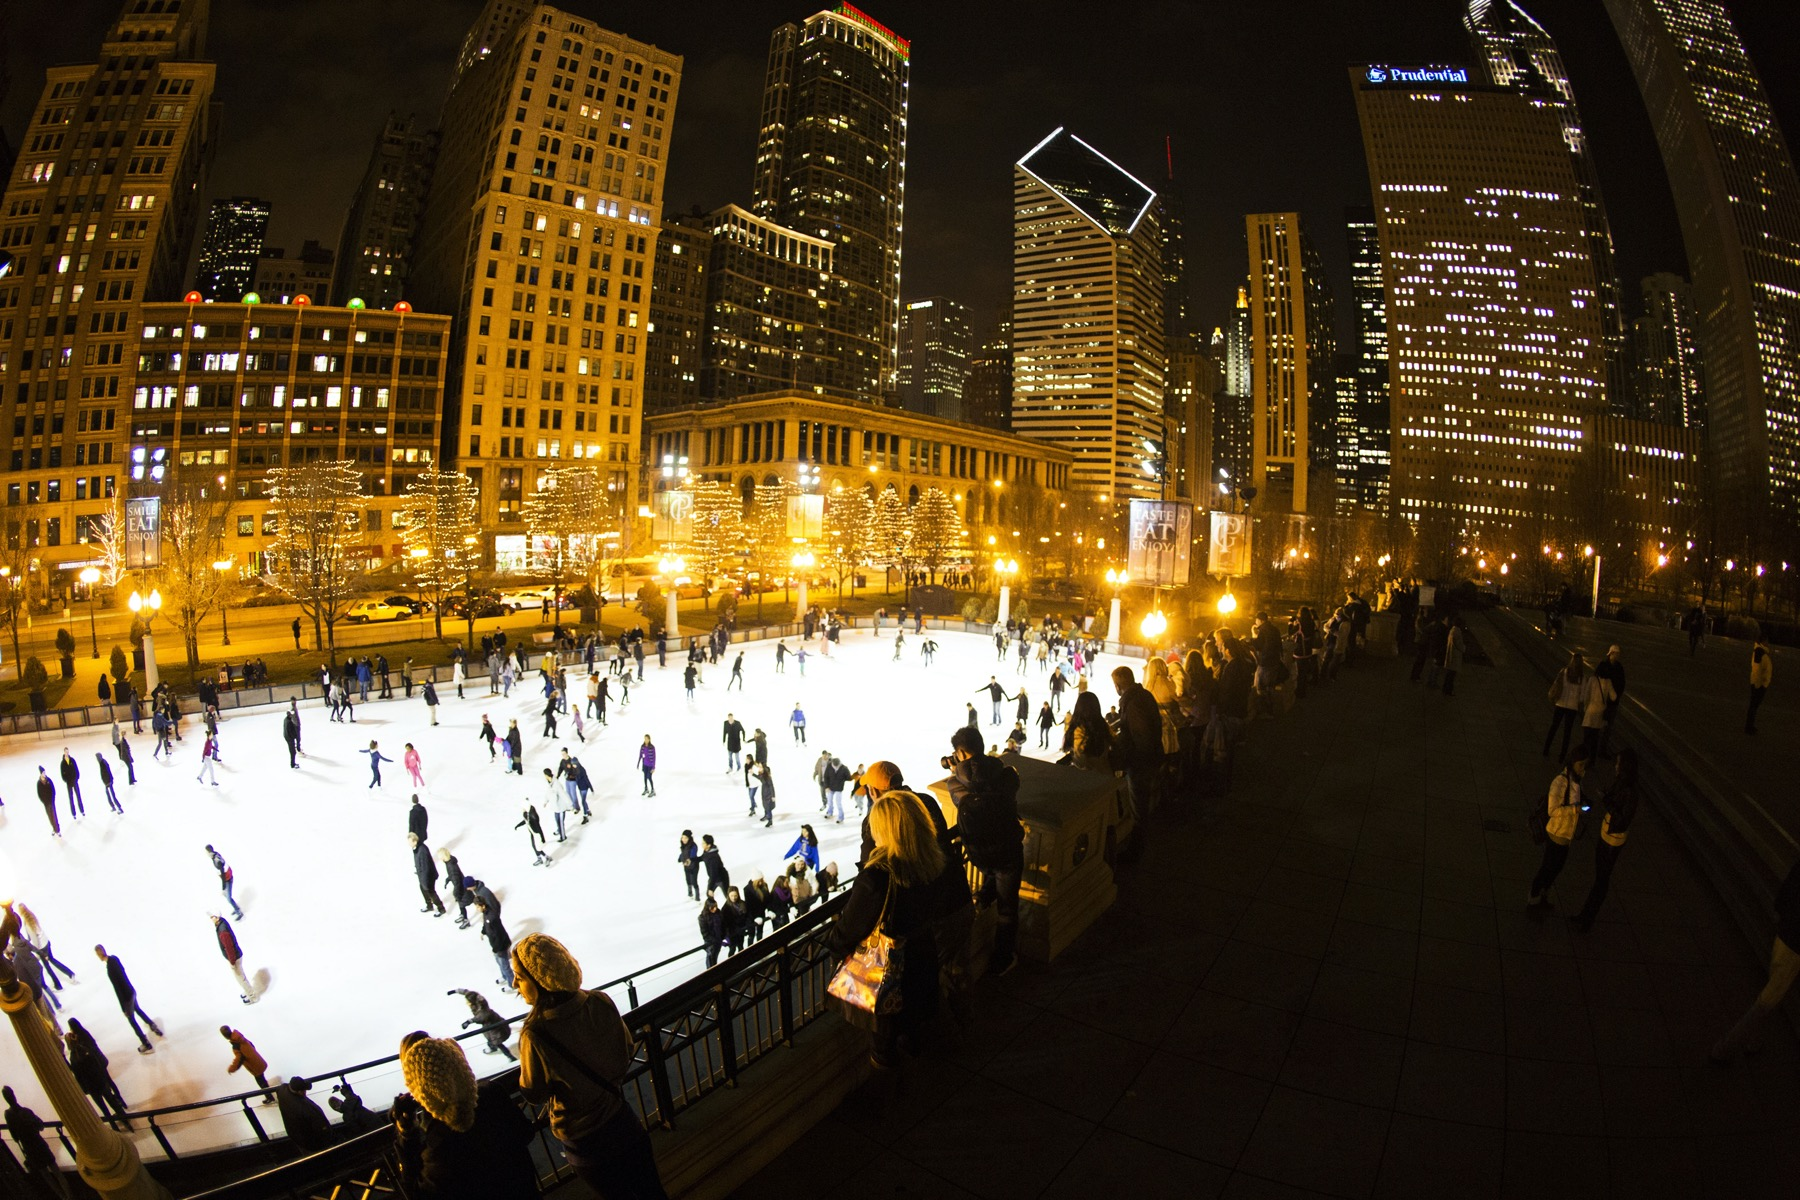 Nighttime Ice Skating